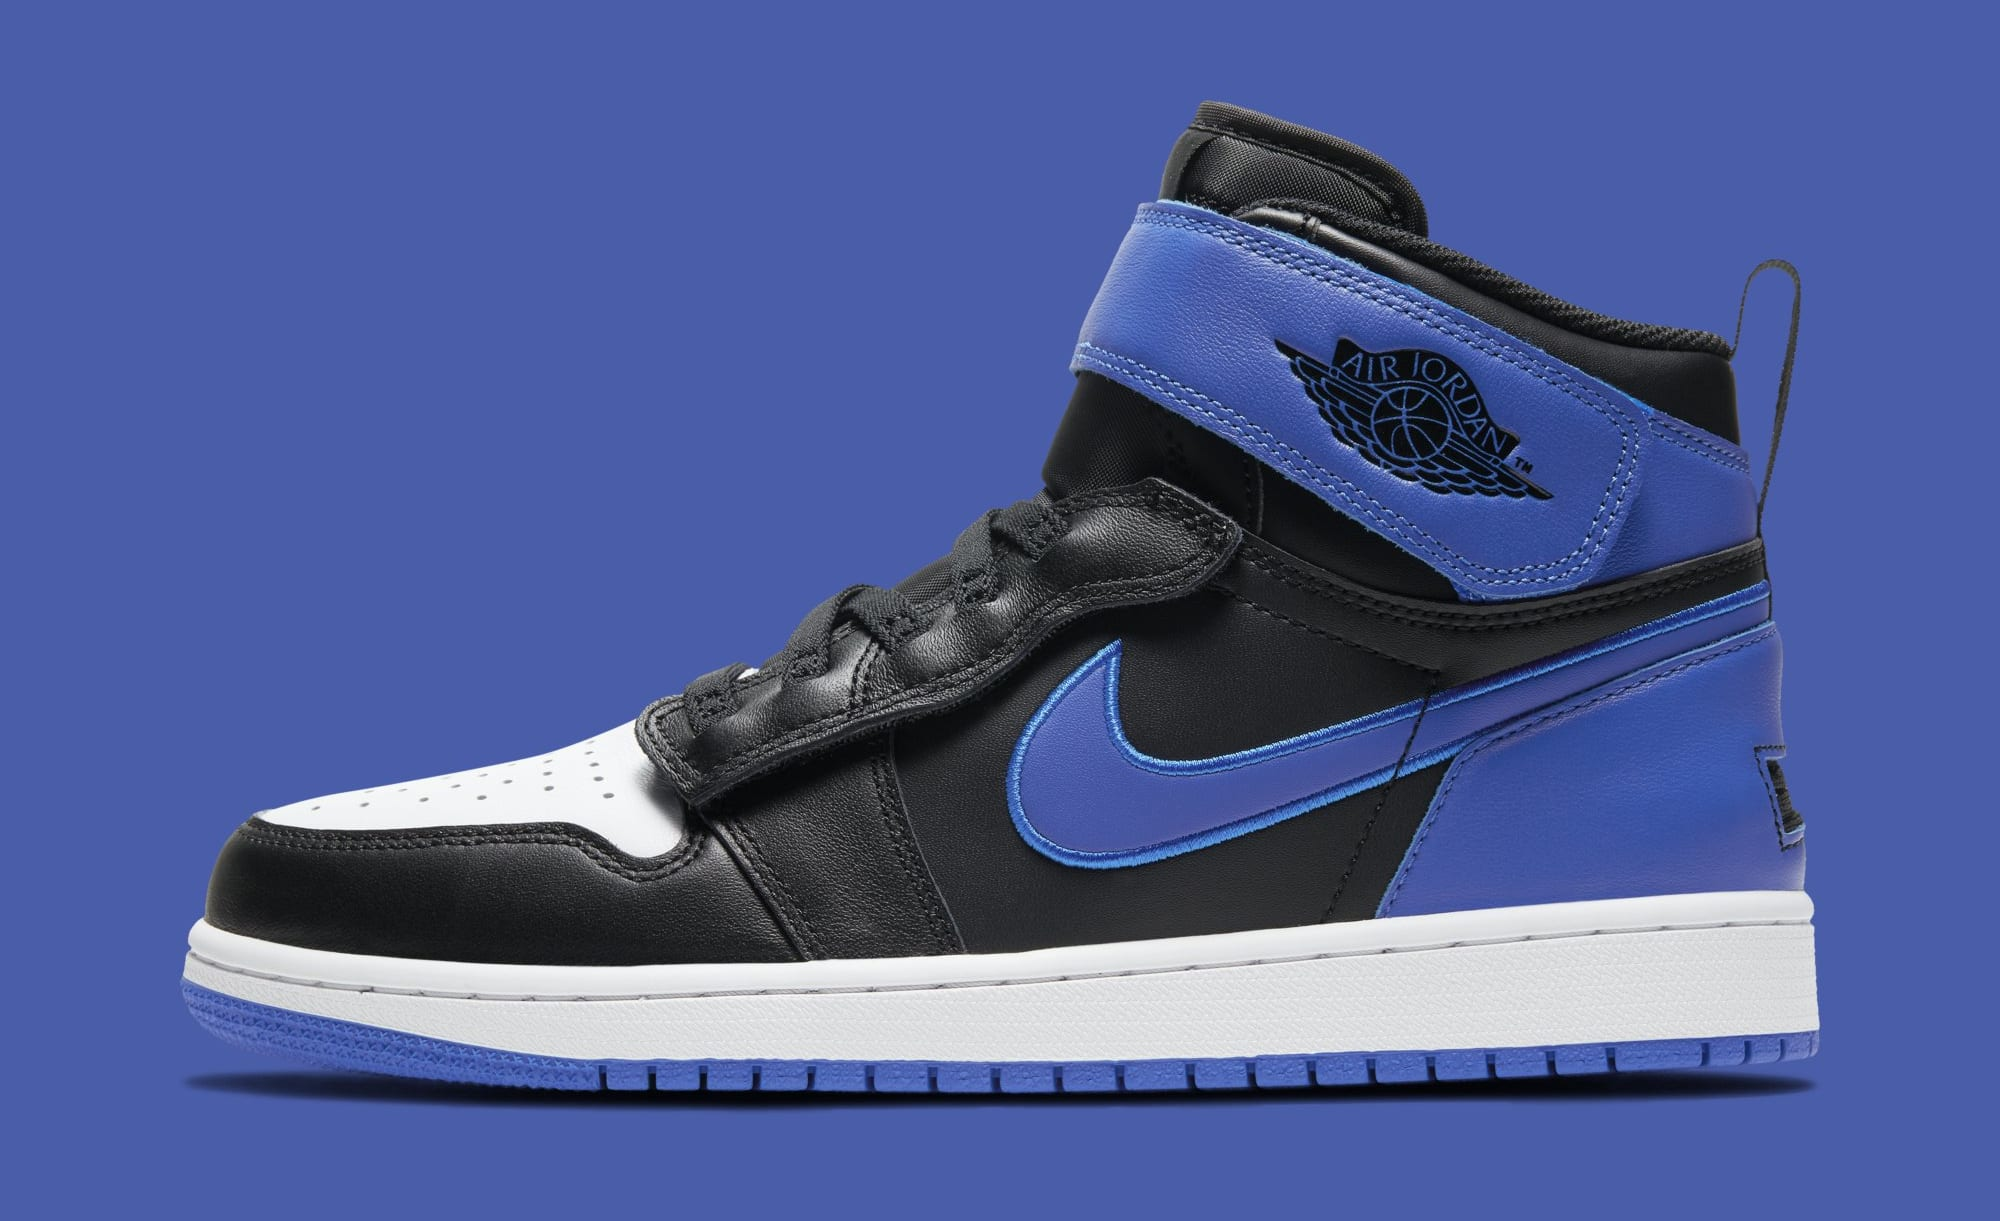 Air Jordan 1 Flyease 'Royal' CQ3835-041 Lateral